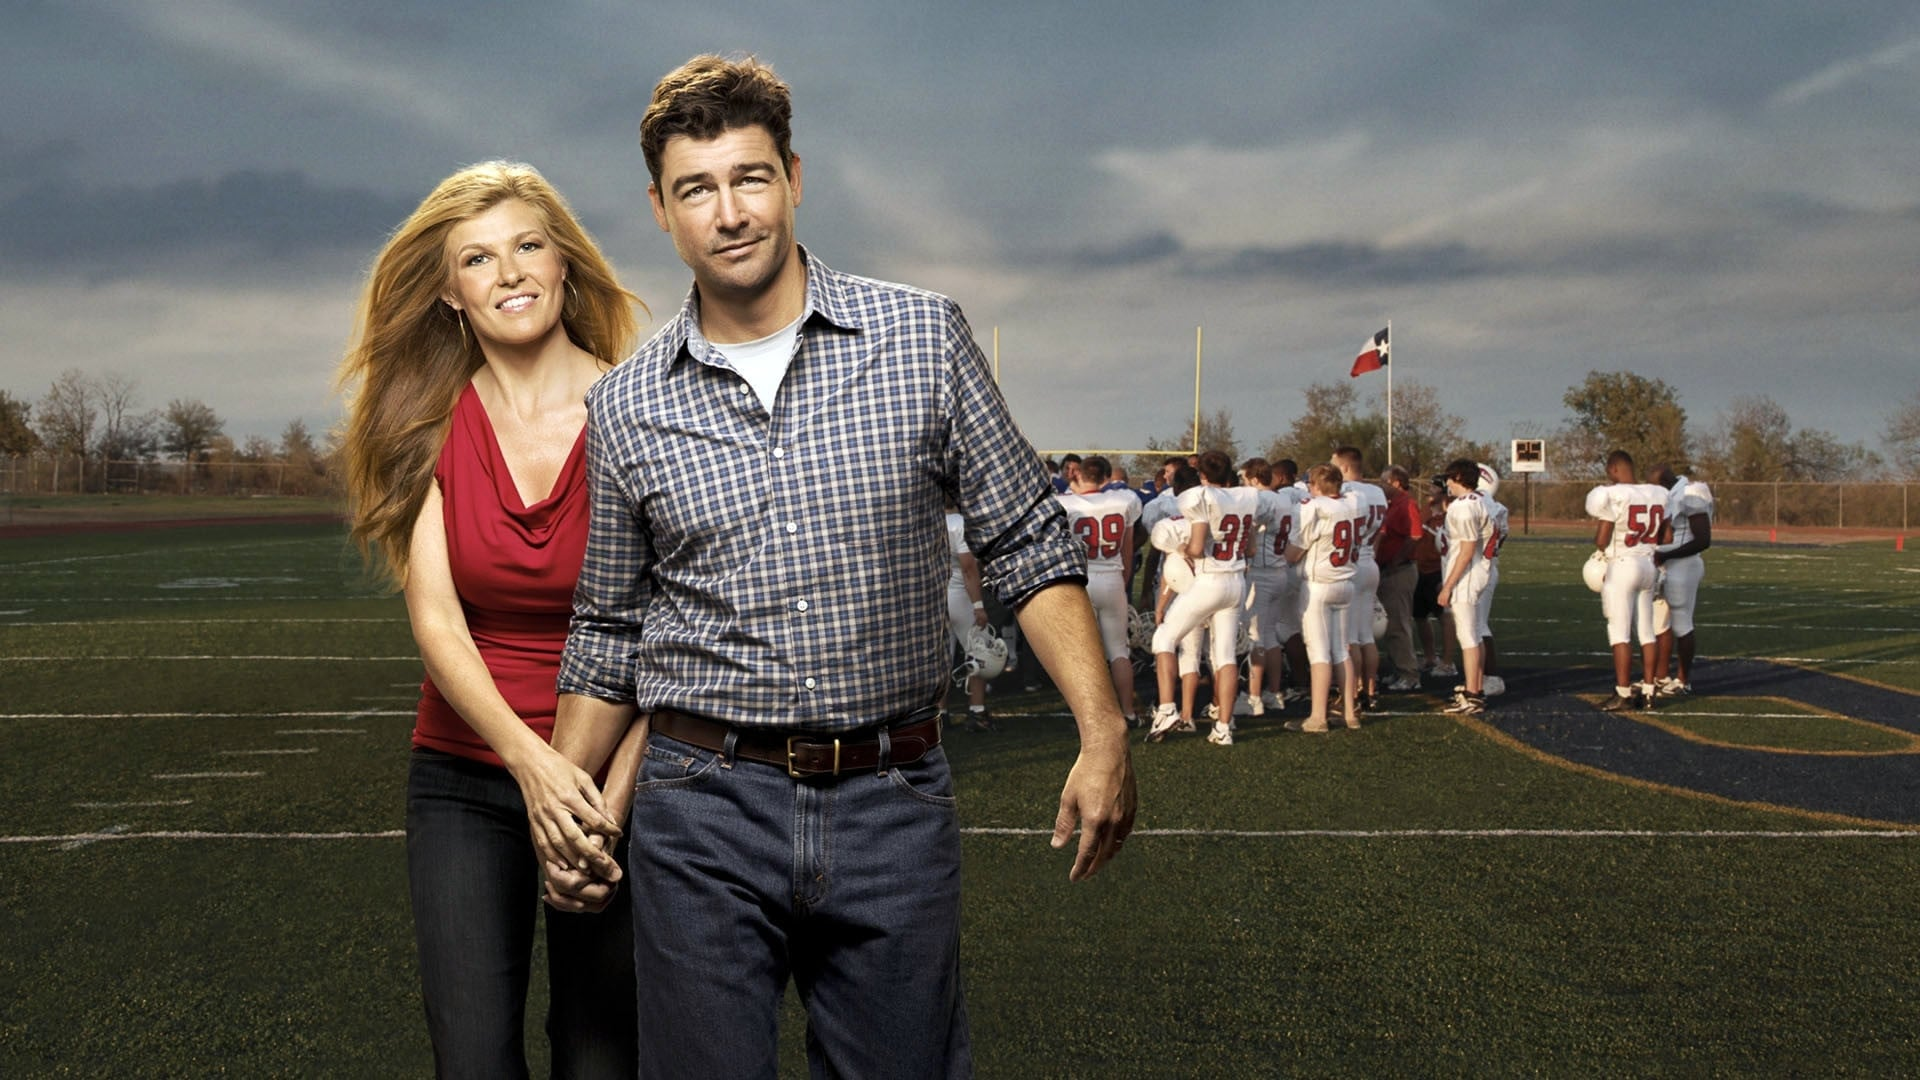 TNT komt in oktober met Emmy Award-winnende series Southland en  Friday Night Lights